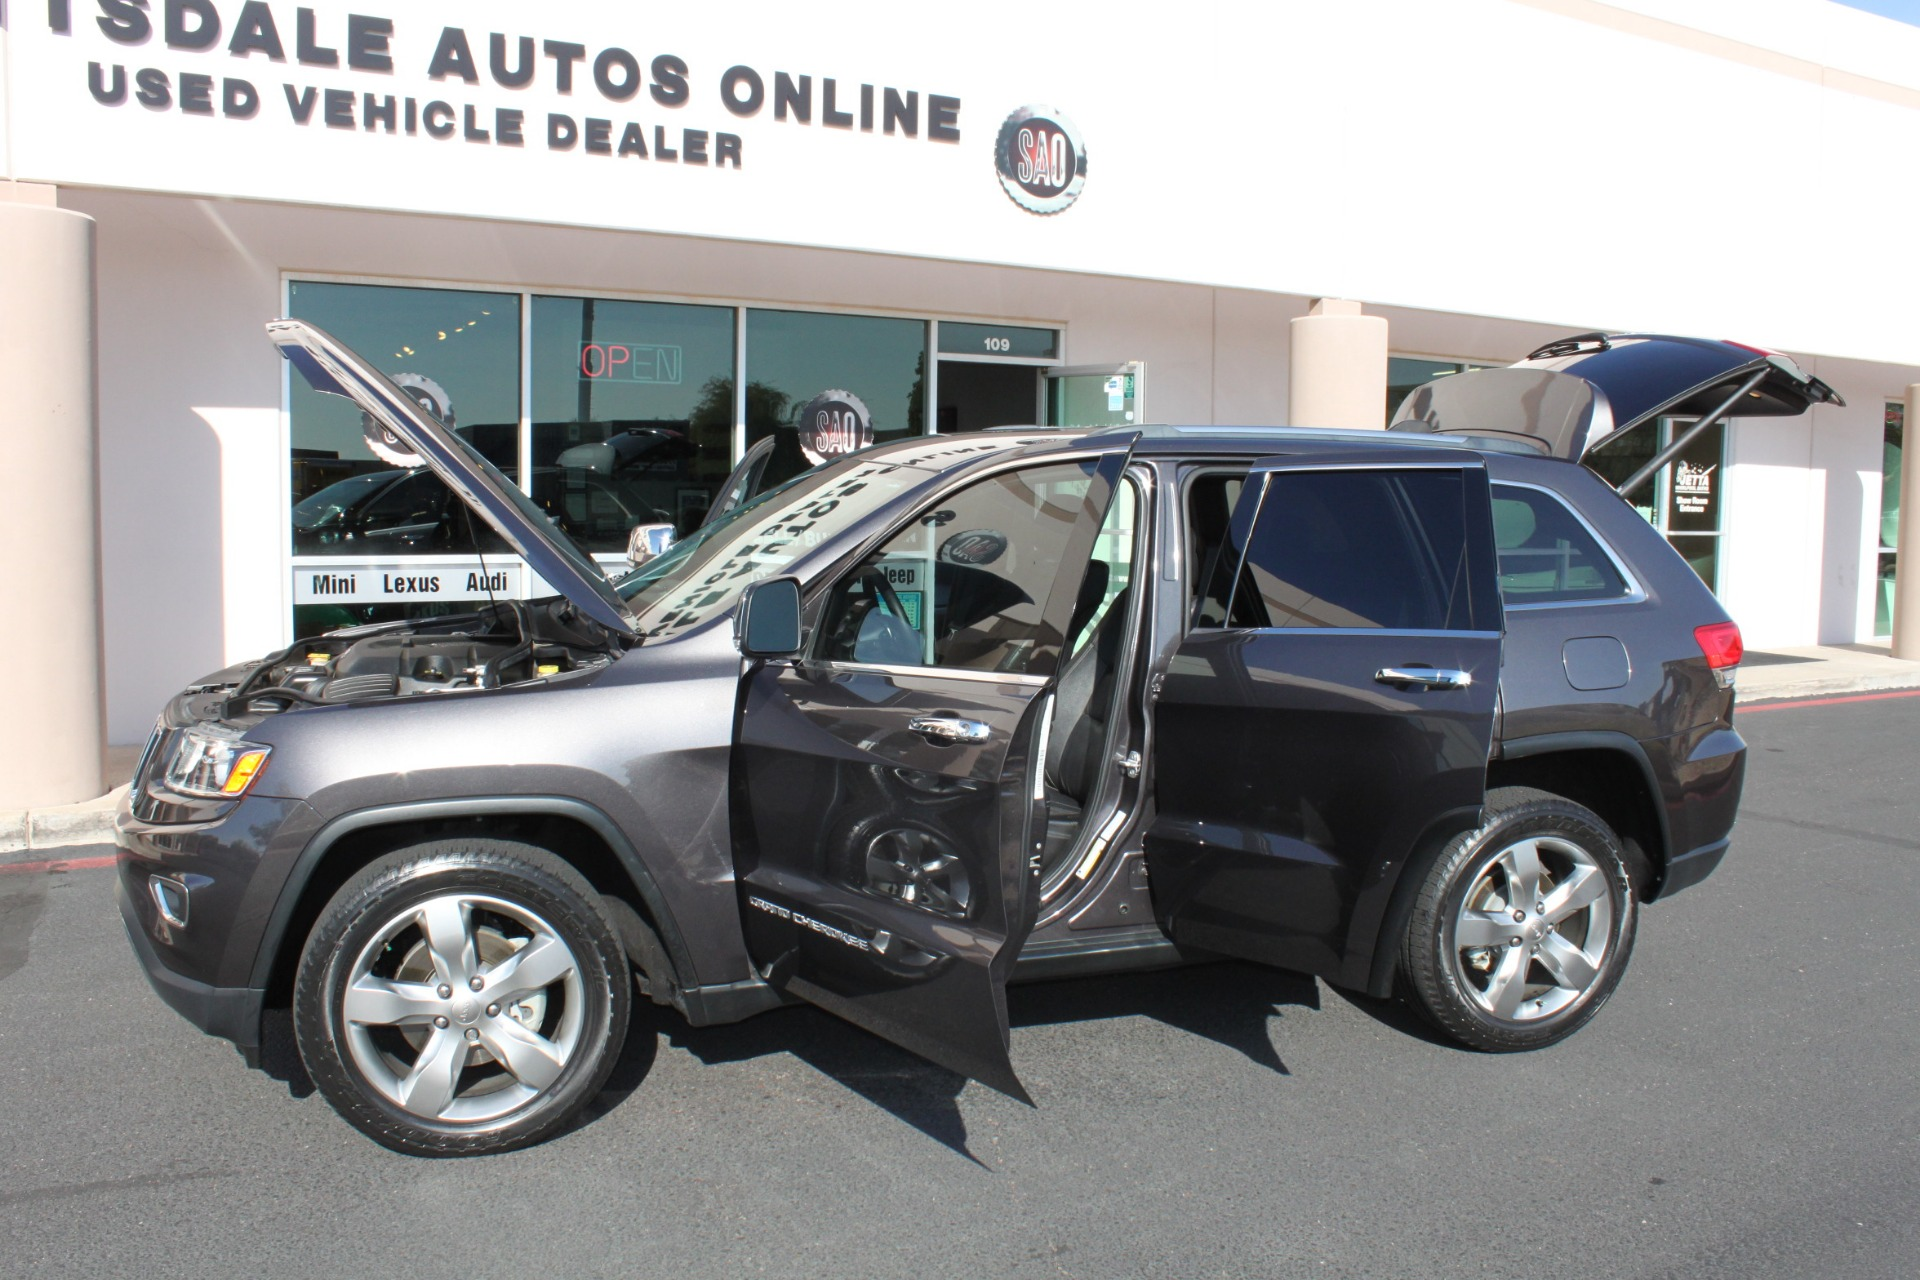 Used-2014-Jeep-Grand-Cherokee-Limited-4X4-Land-Cruiser